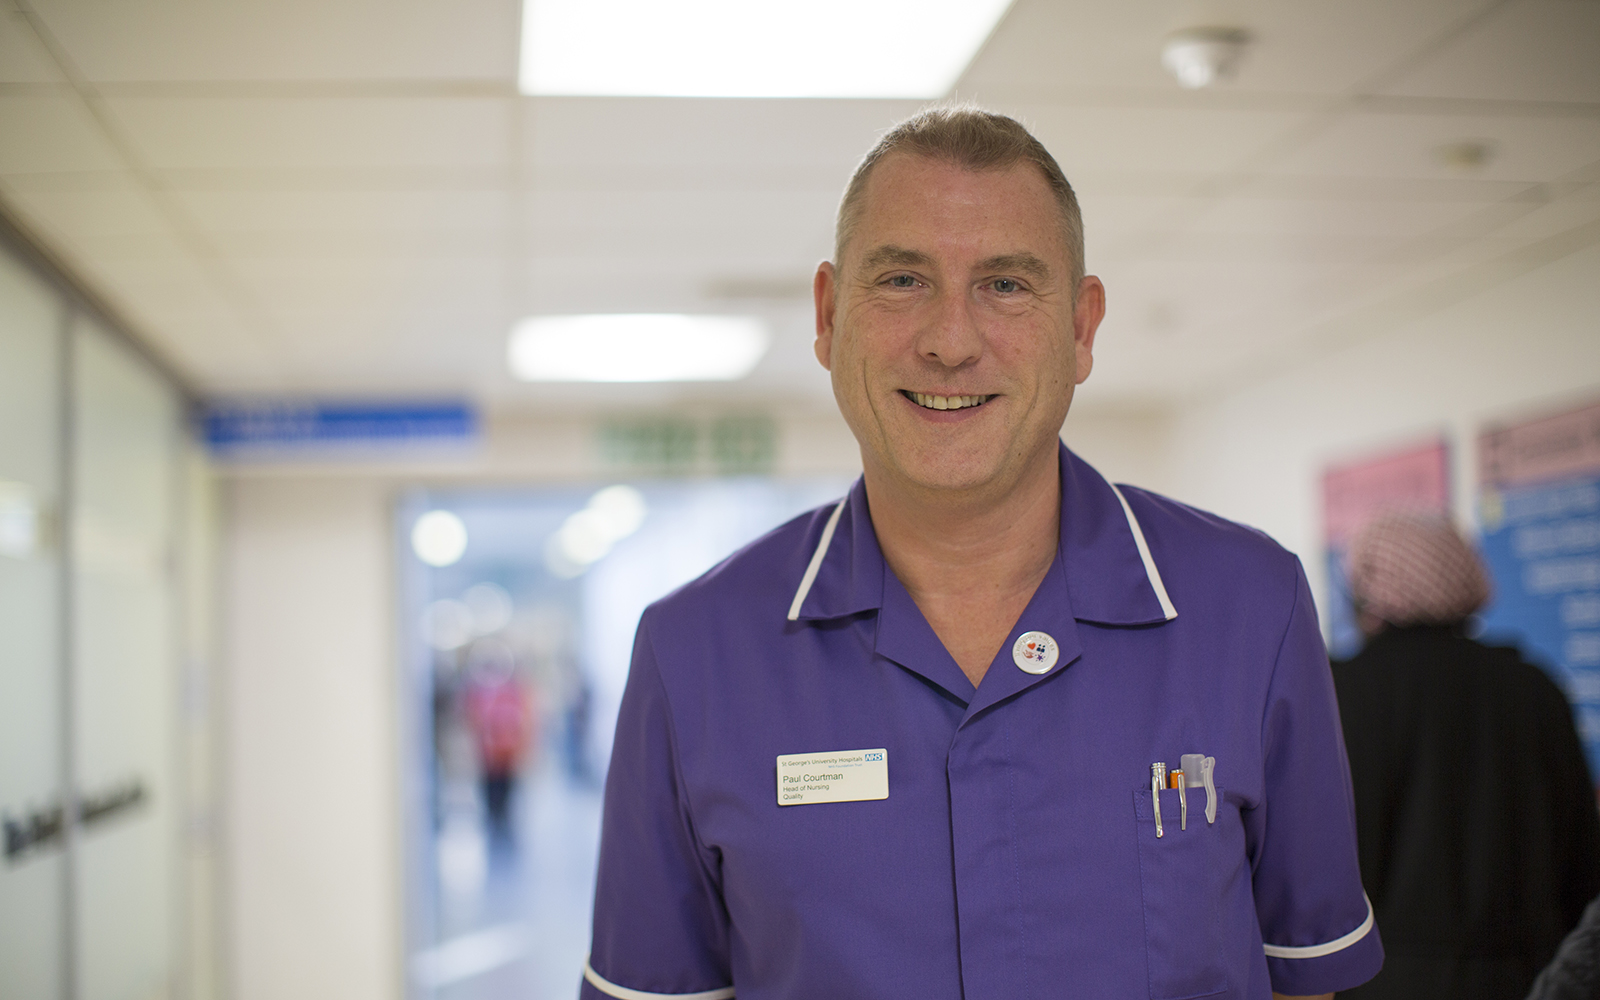 Male nurse stood smiling in hospital corridor